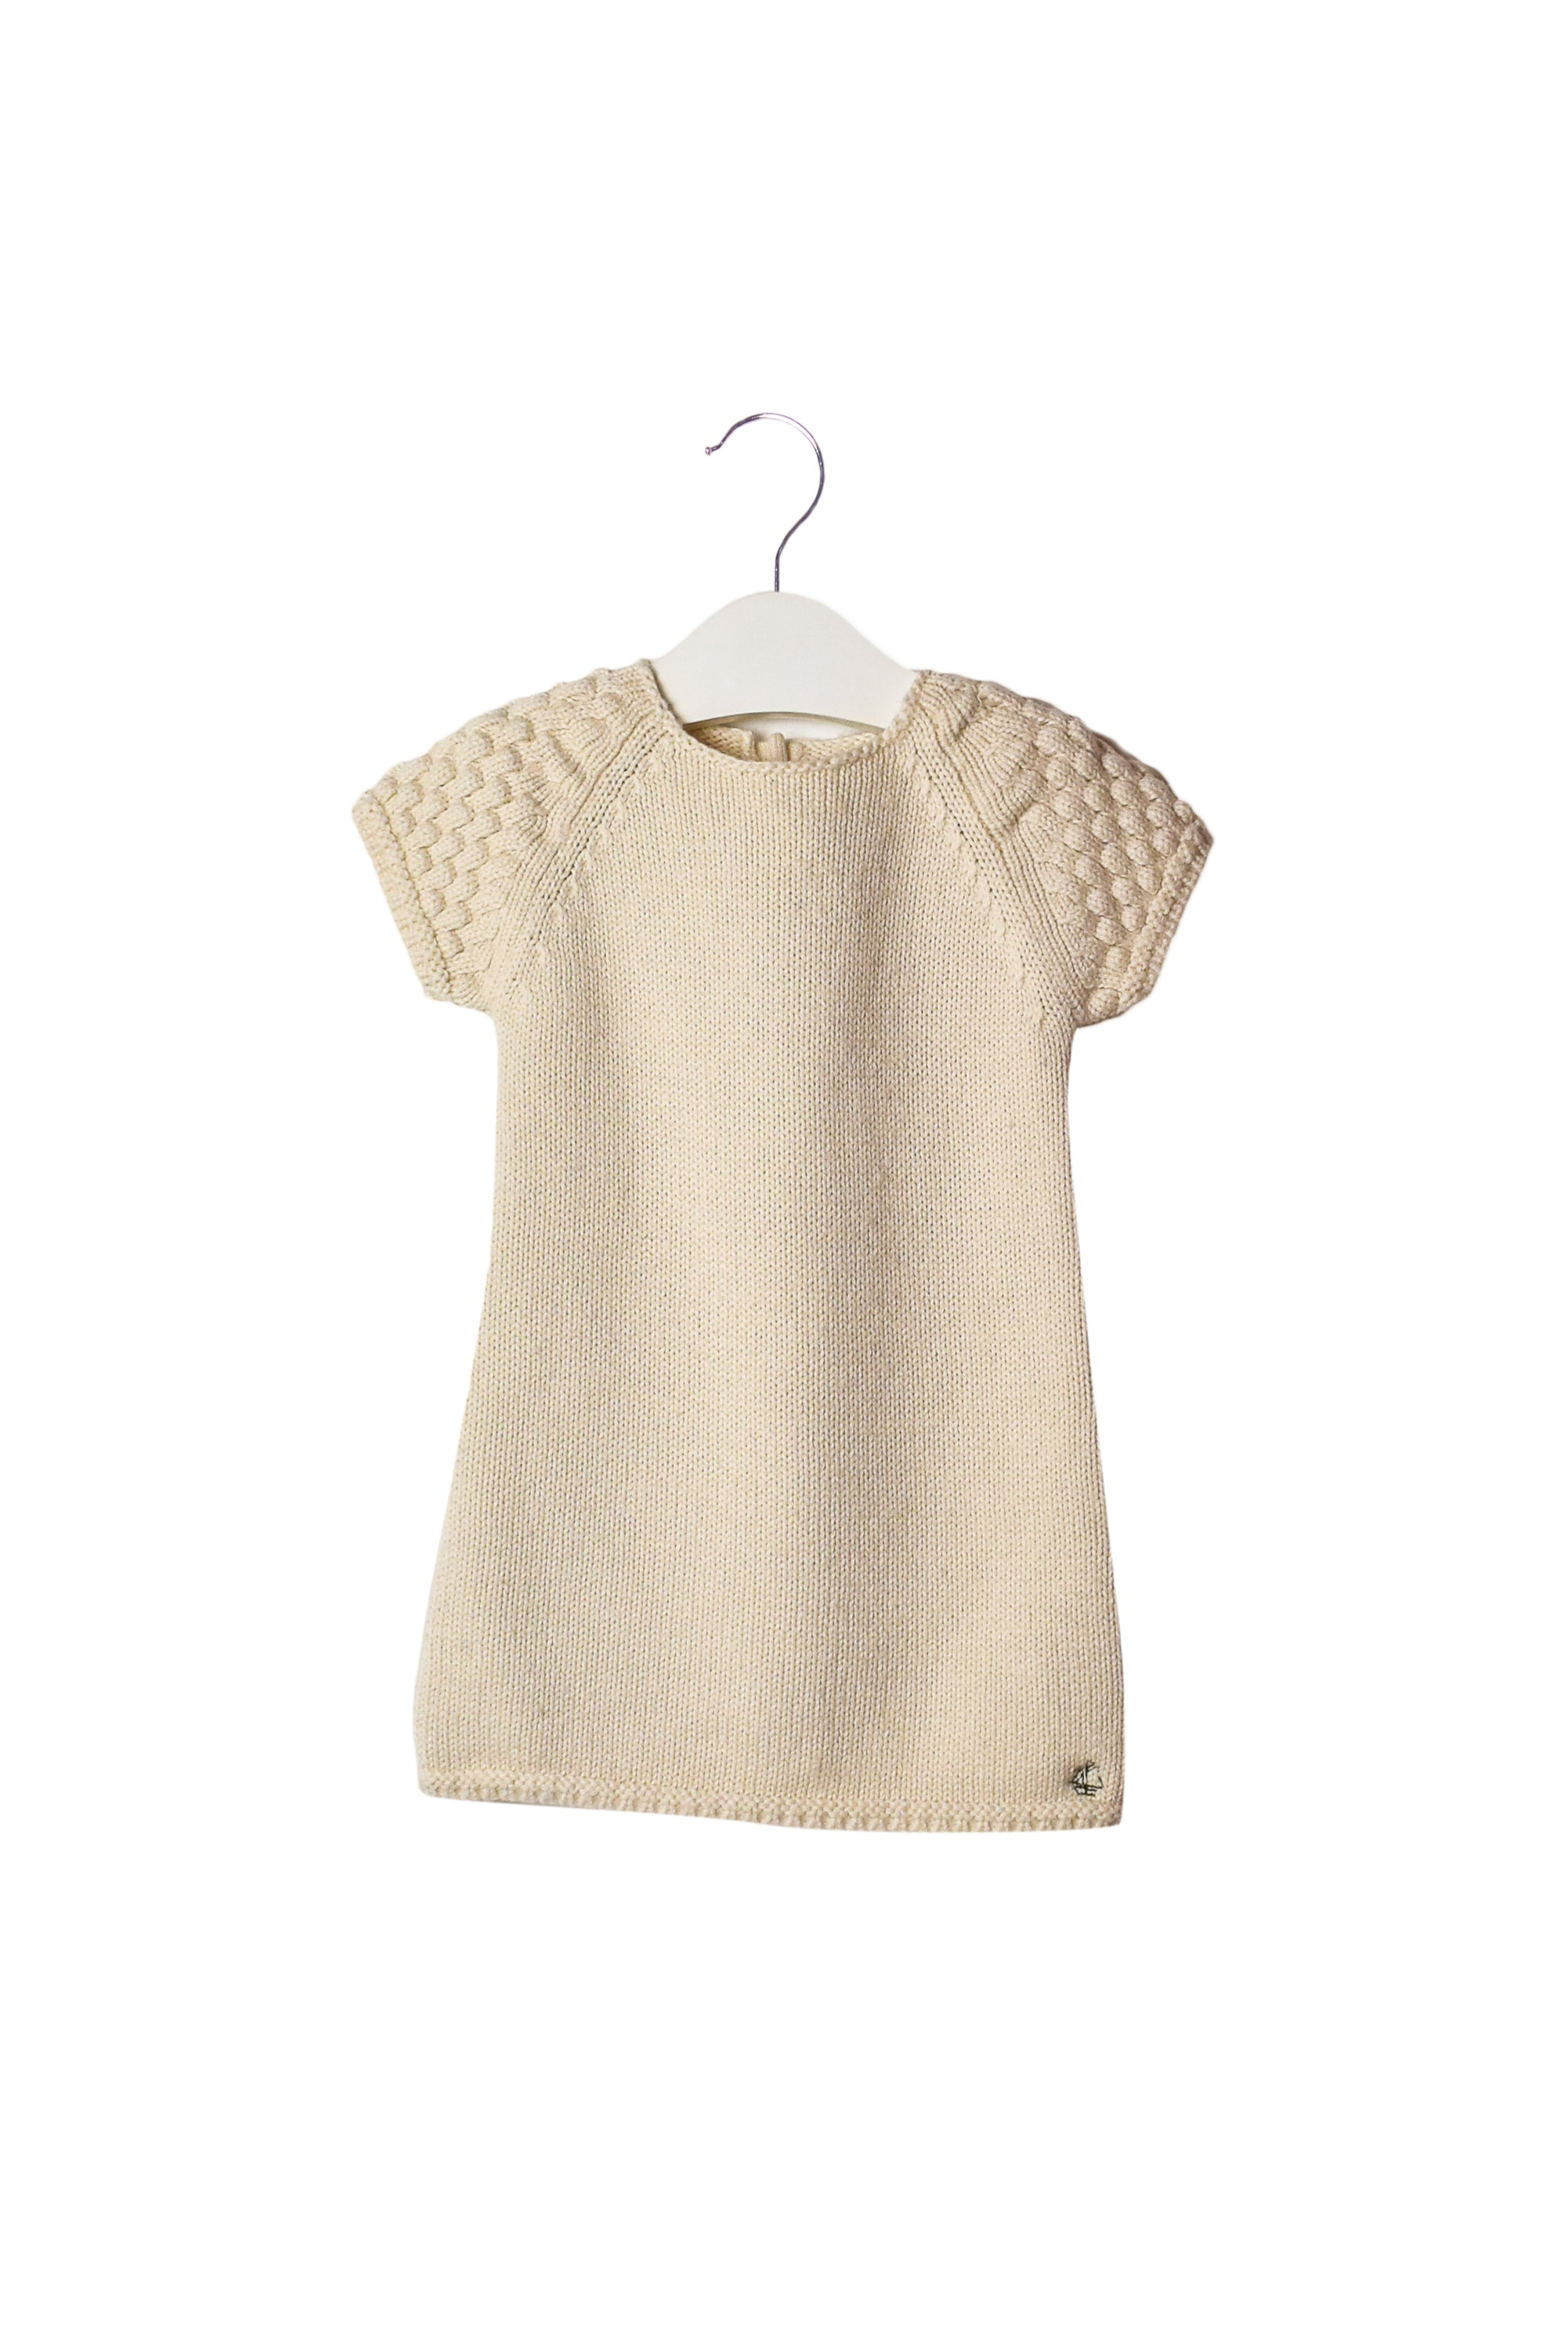 10007168 Petit Bateau Baby~ Dress 12-18M at Retykle